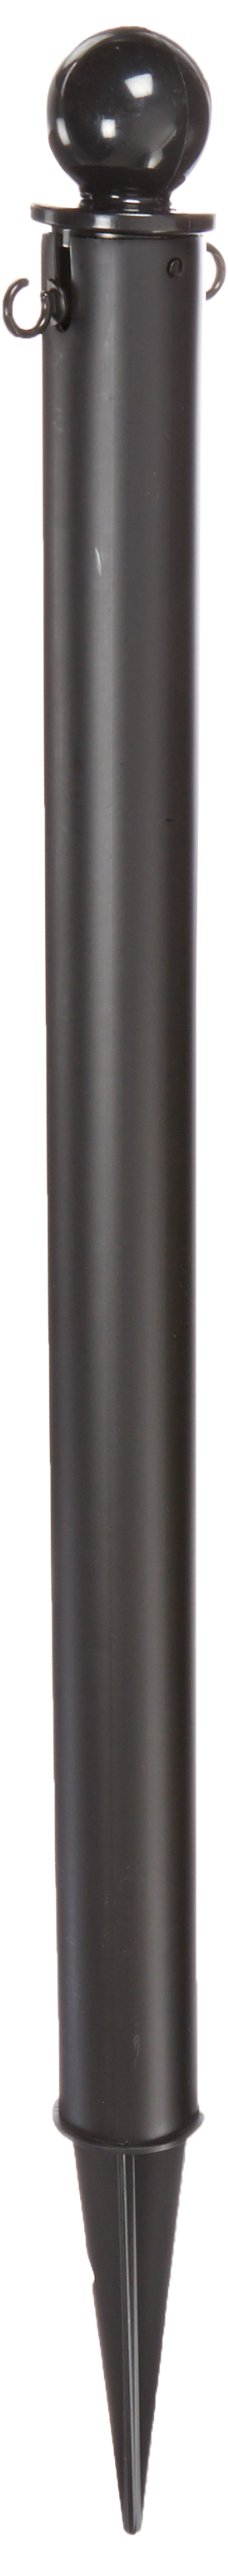 Mr. Chain 95403-6 Deluxe Ground Pole, 2-1/2'' Diameter x 35'' Height, Black (Pack of 6)